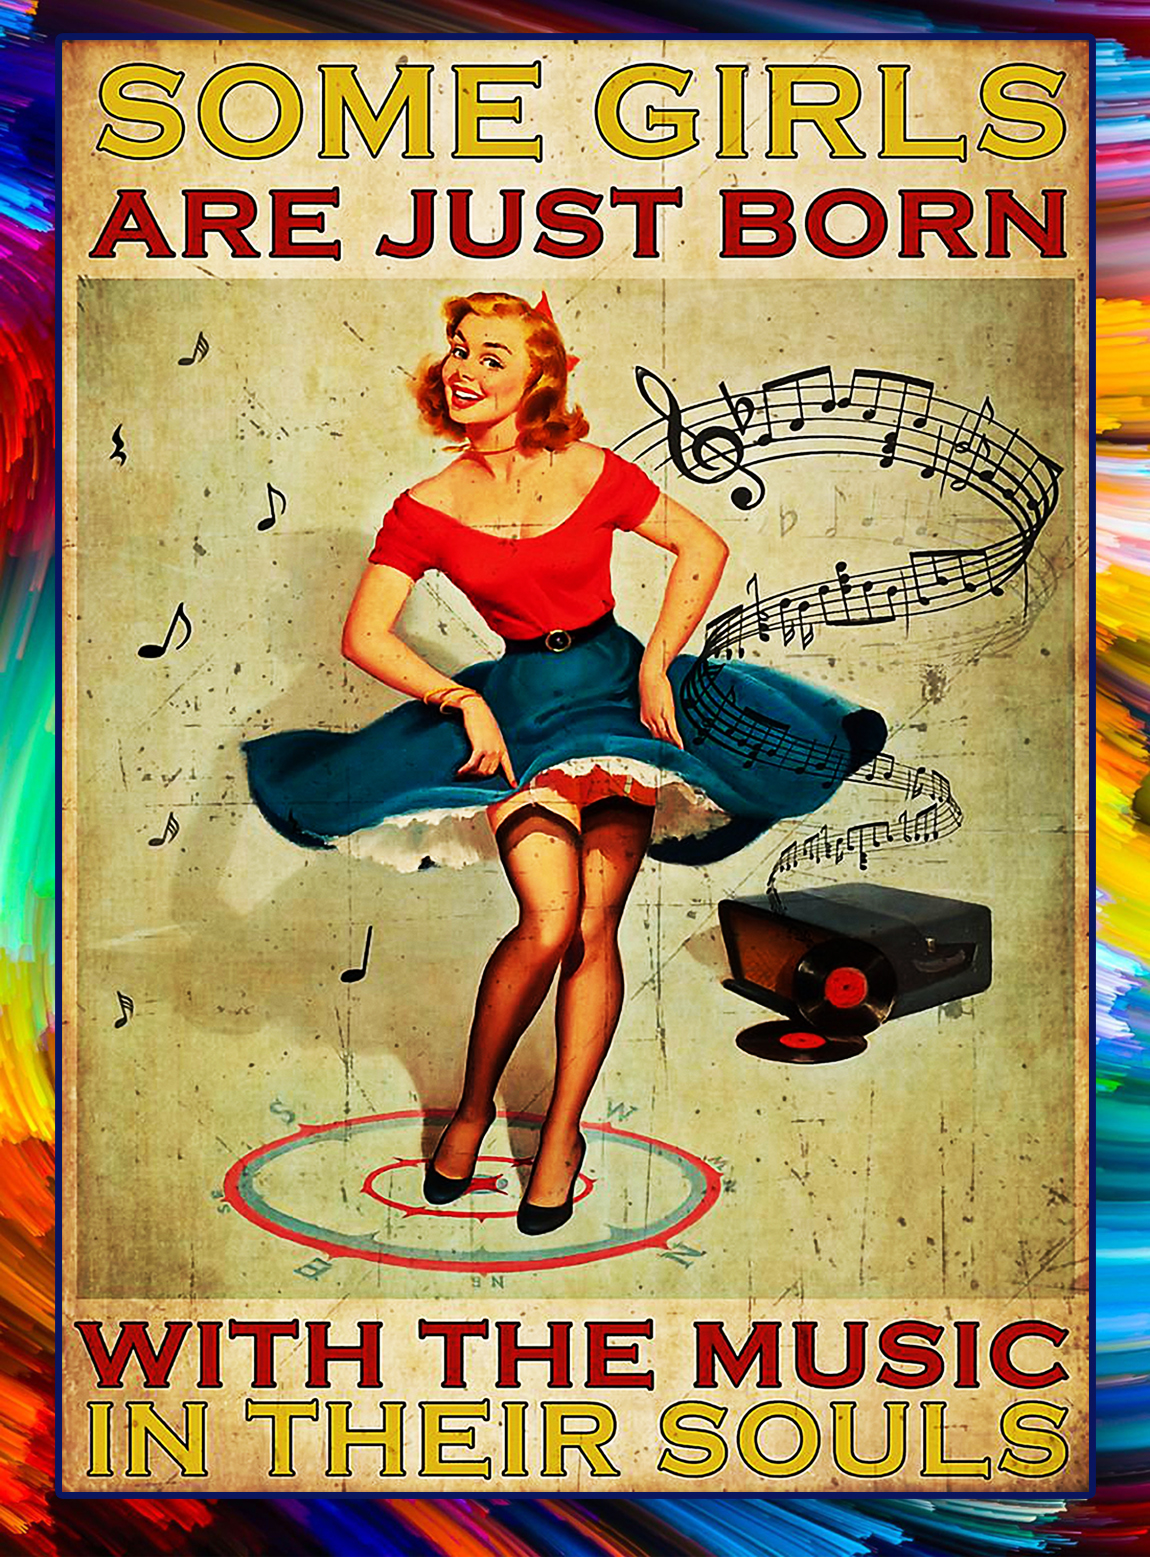 Some girls are just born with the music in their souls poster - A3